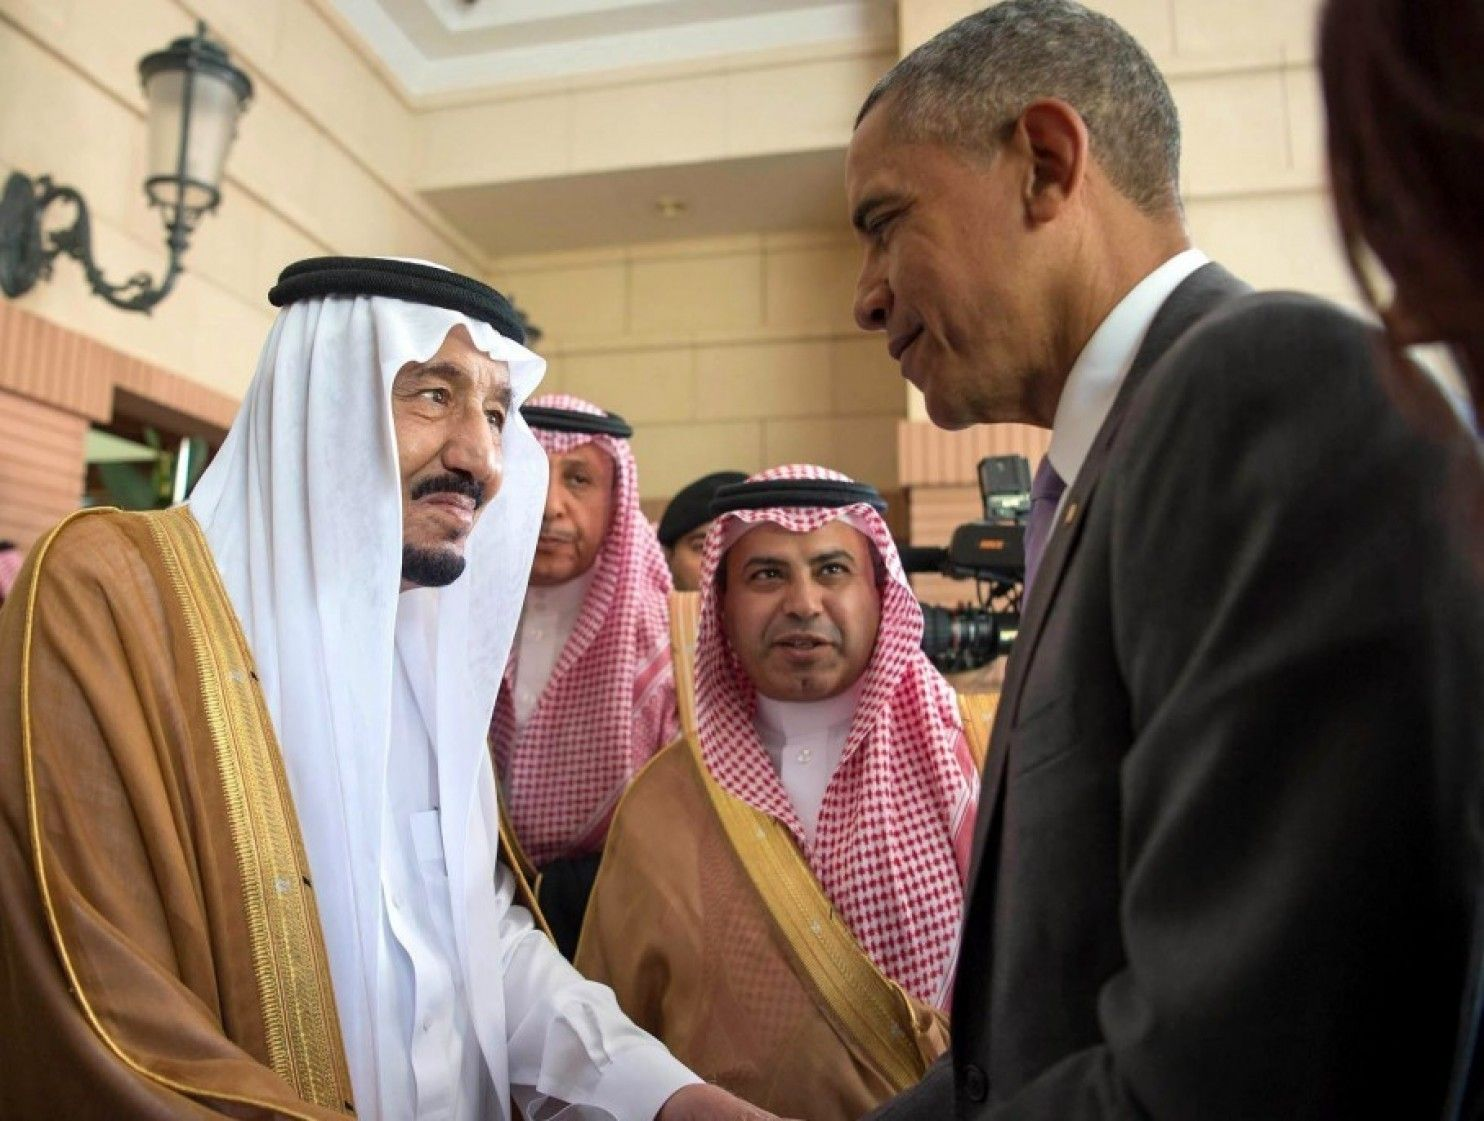 President Obama with Saudi King Salman bin Abdul Aziz al Saud in Riyadh, April 20, 2016 (Saudi Press Agency)